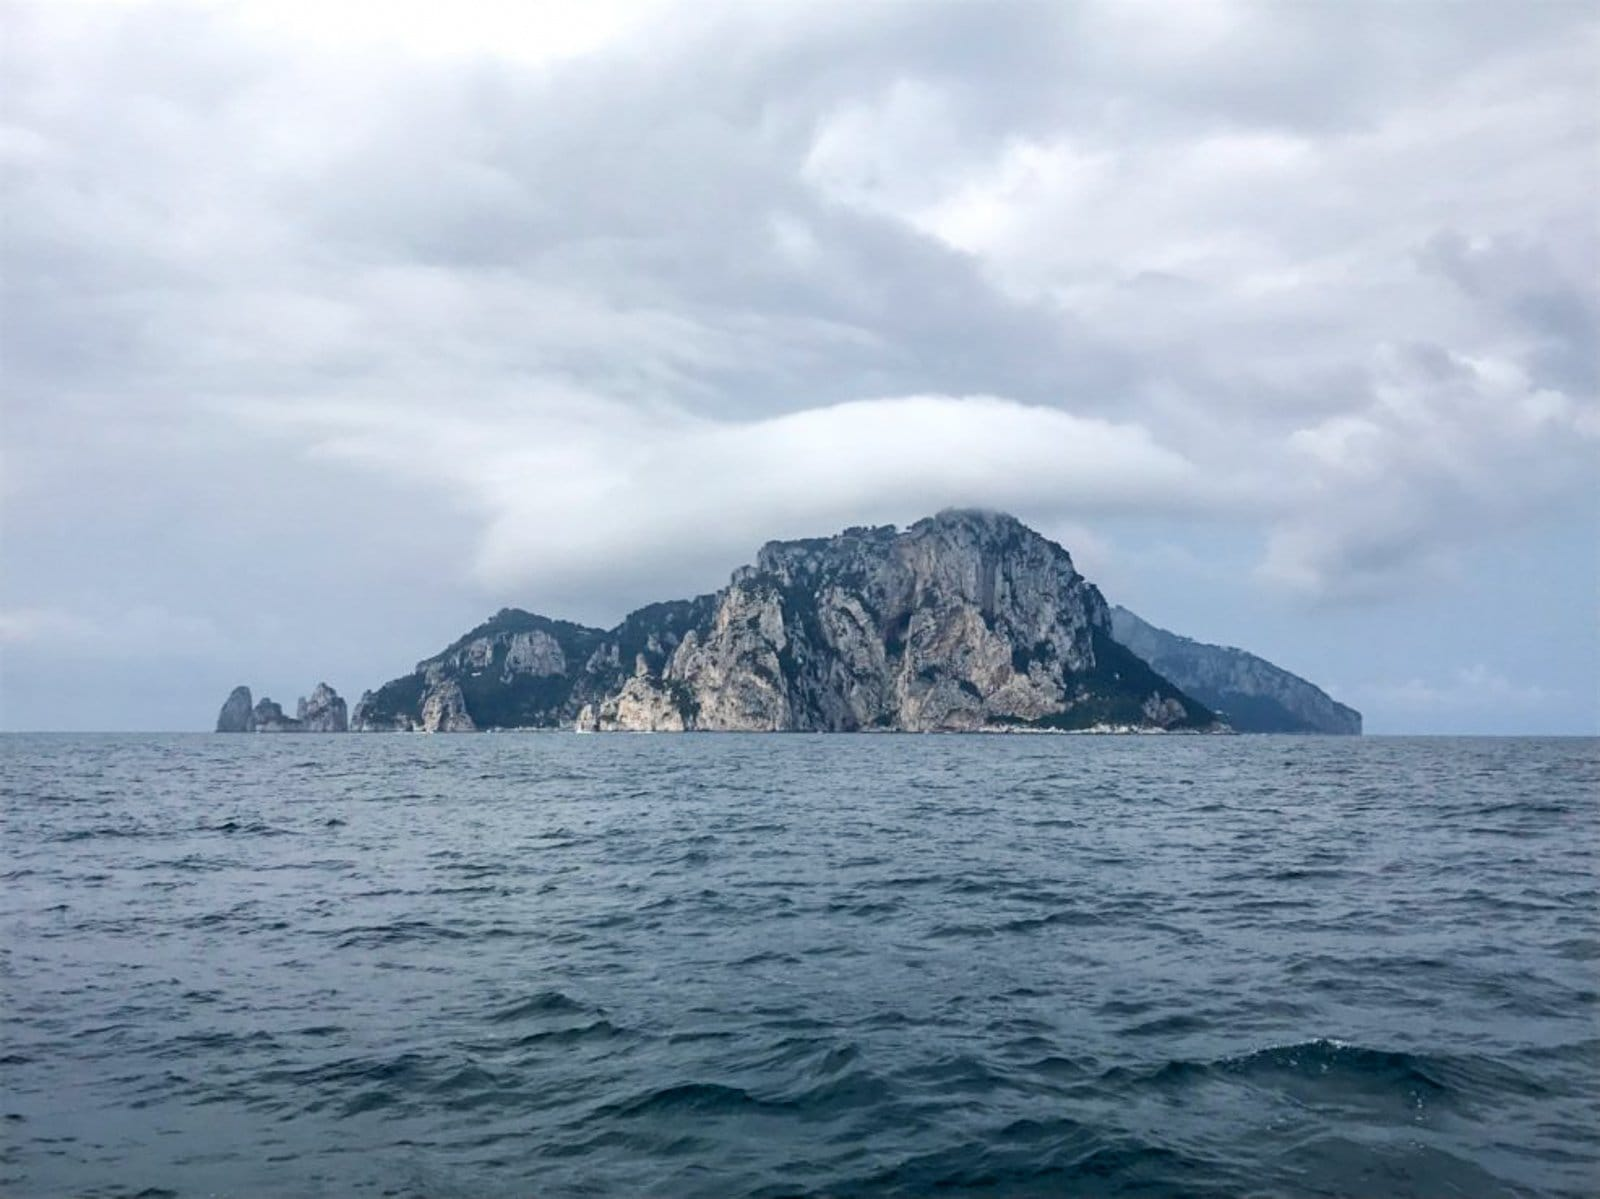 Capri Island viewed from the ocean.